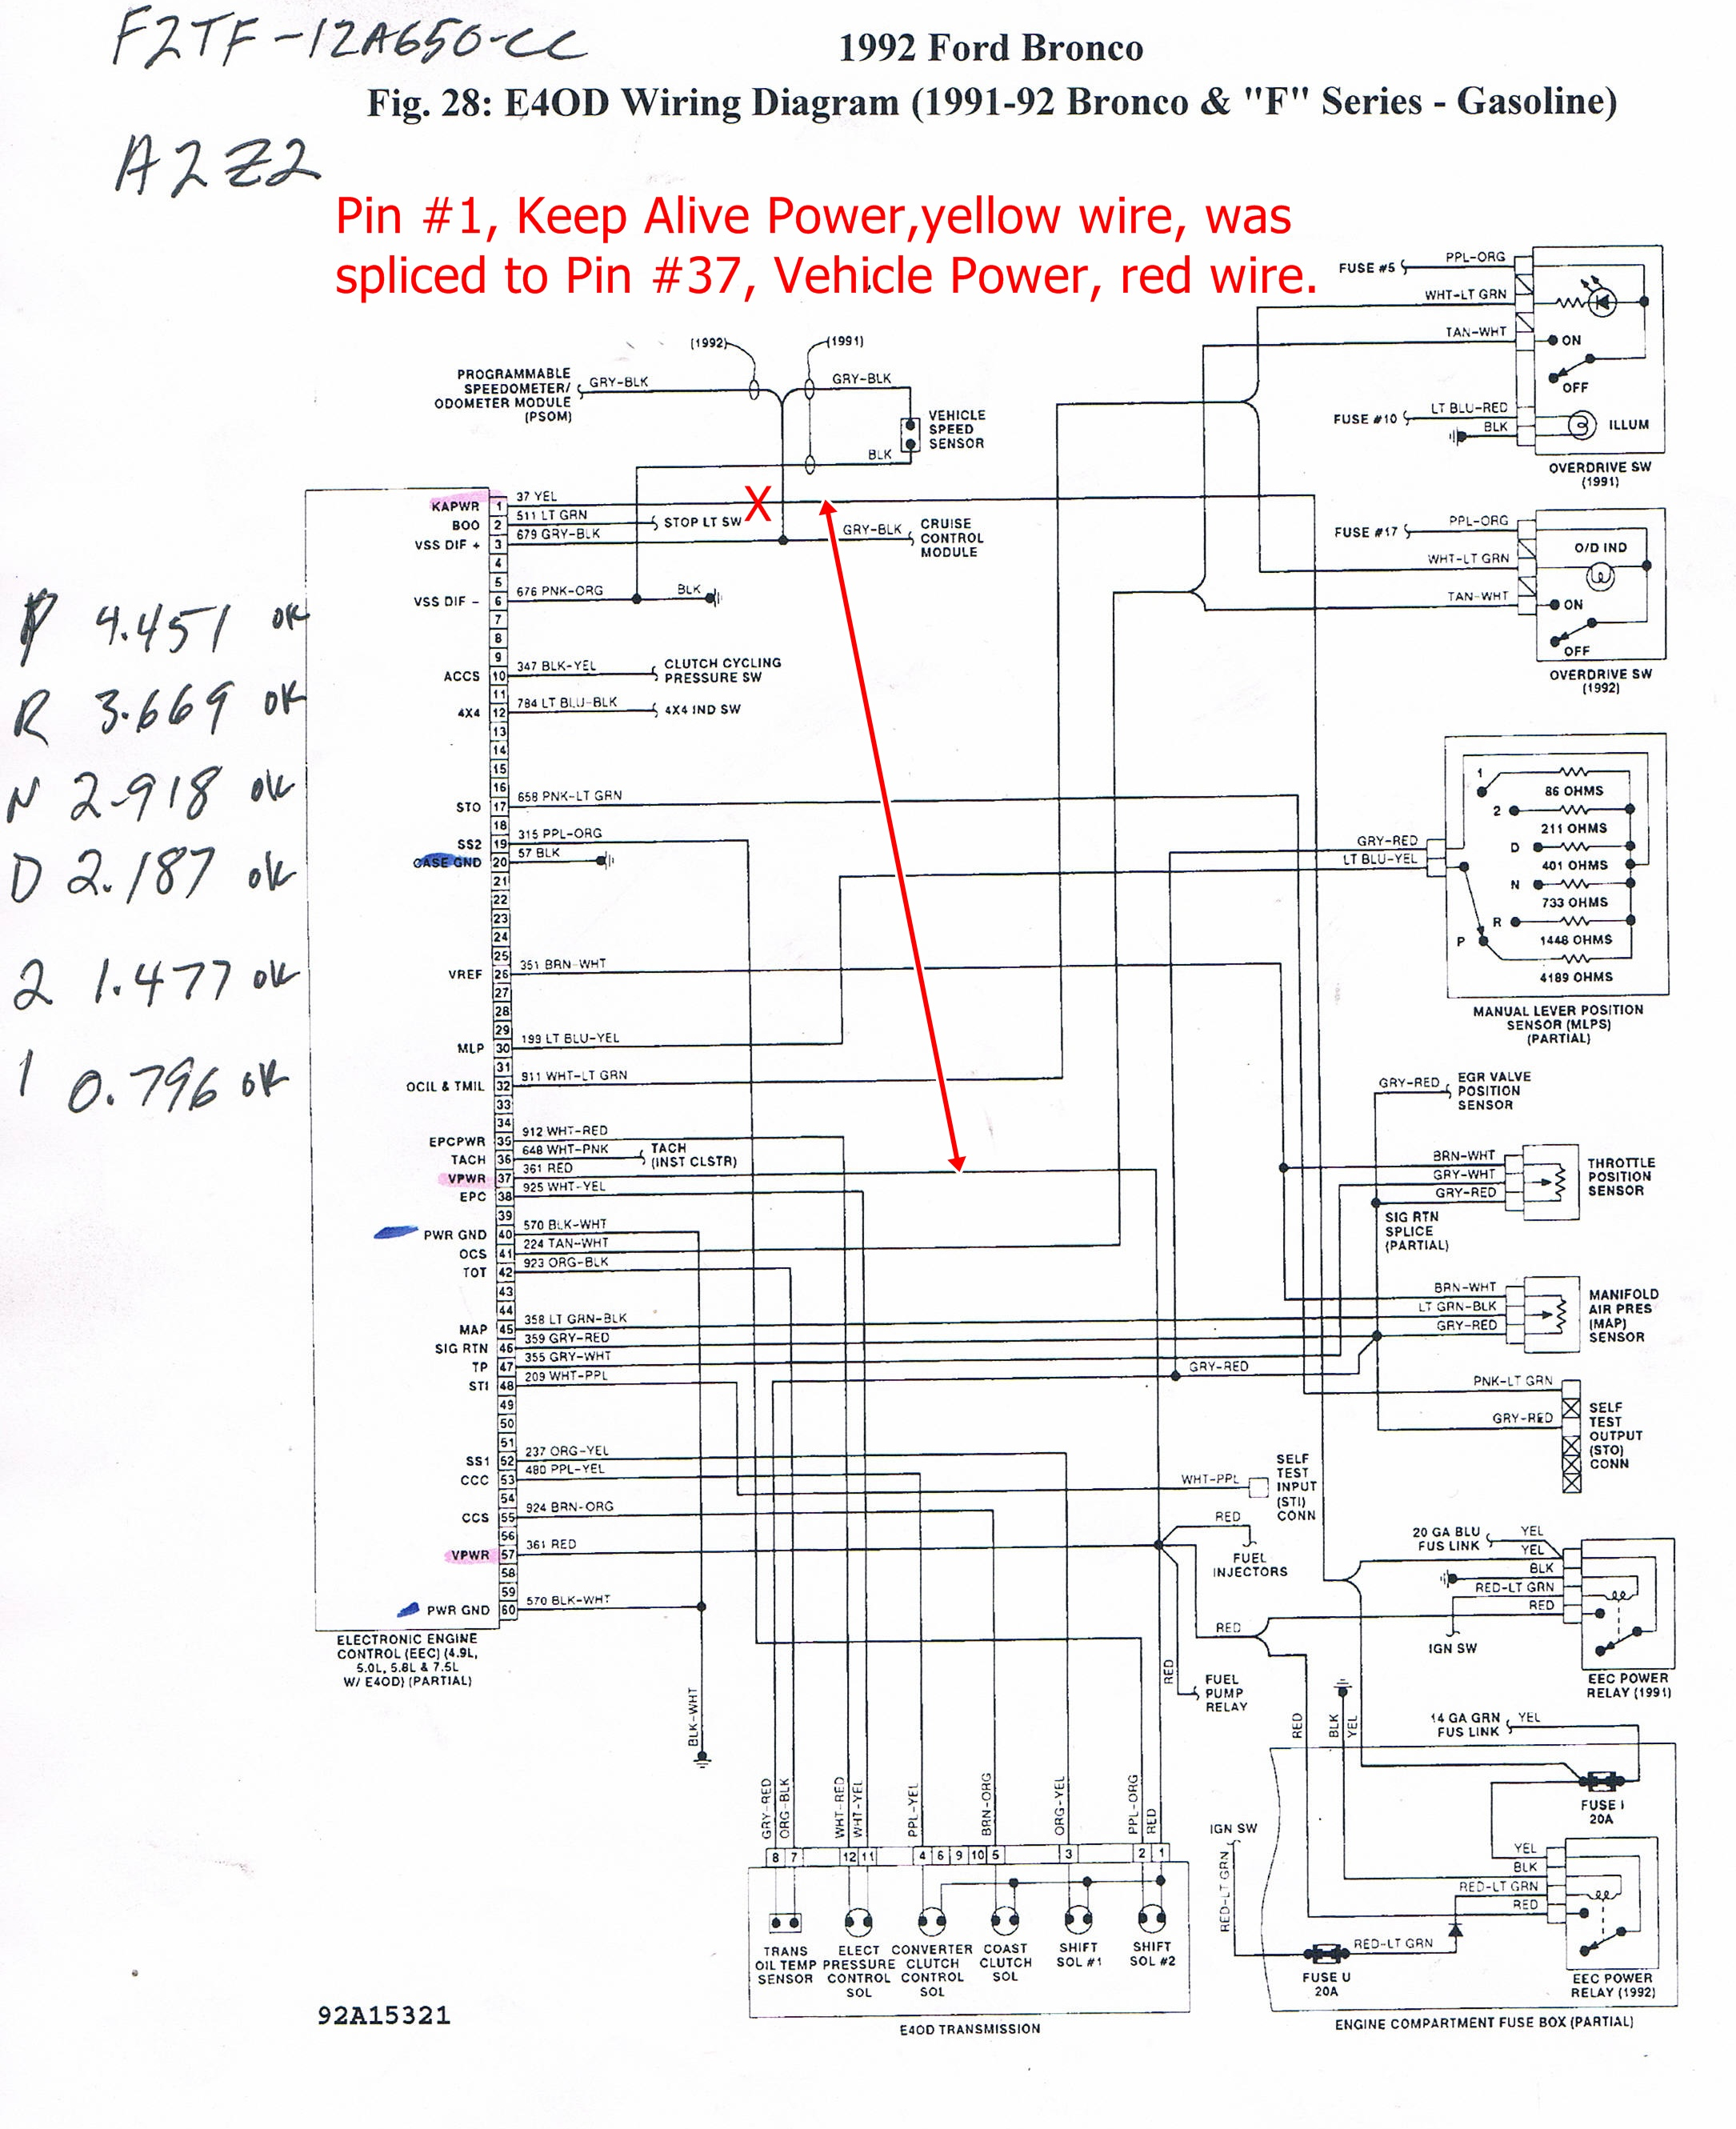 Wire Diagram on 2005 Dodge Dakota 4x4 Problems